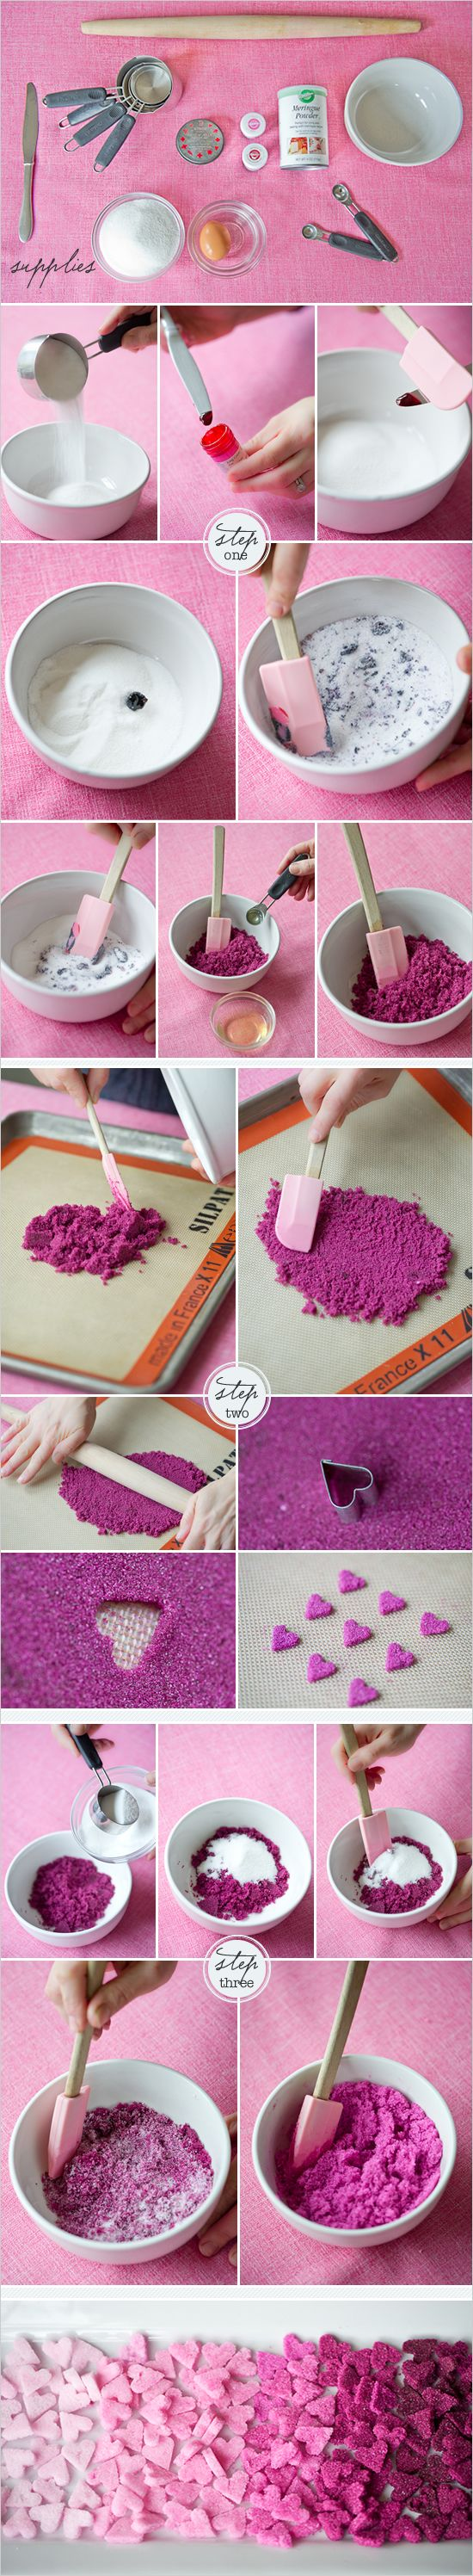 DIY ombre hearts